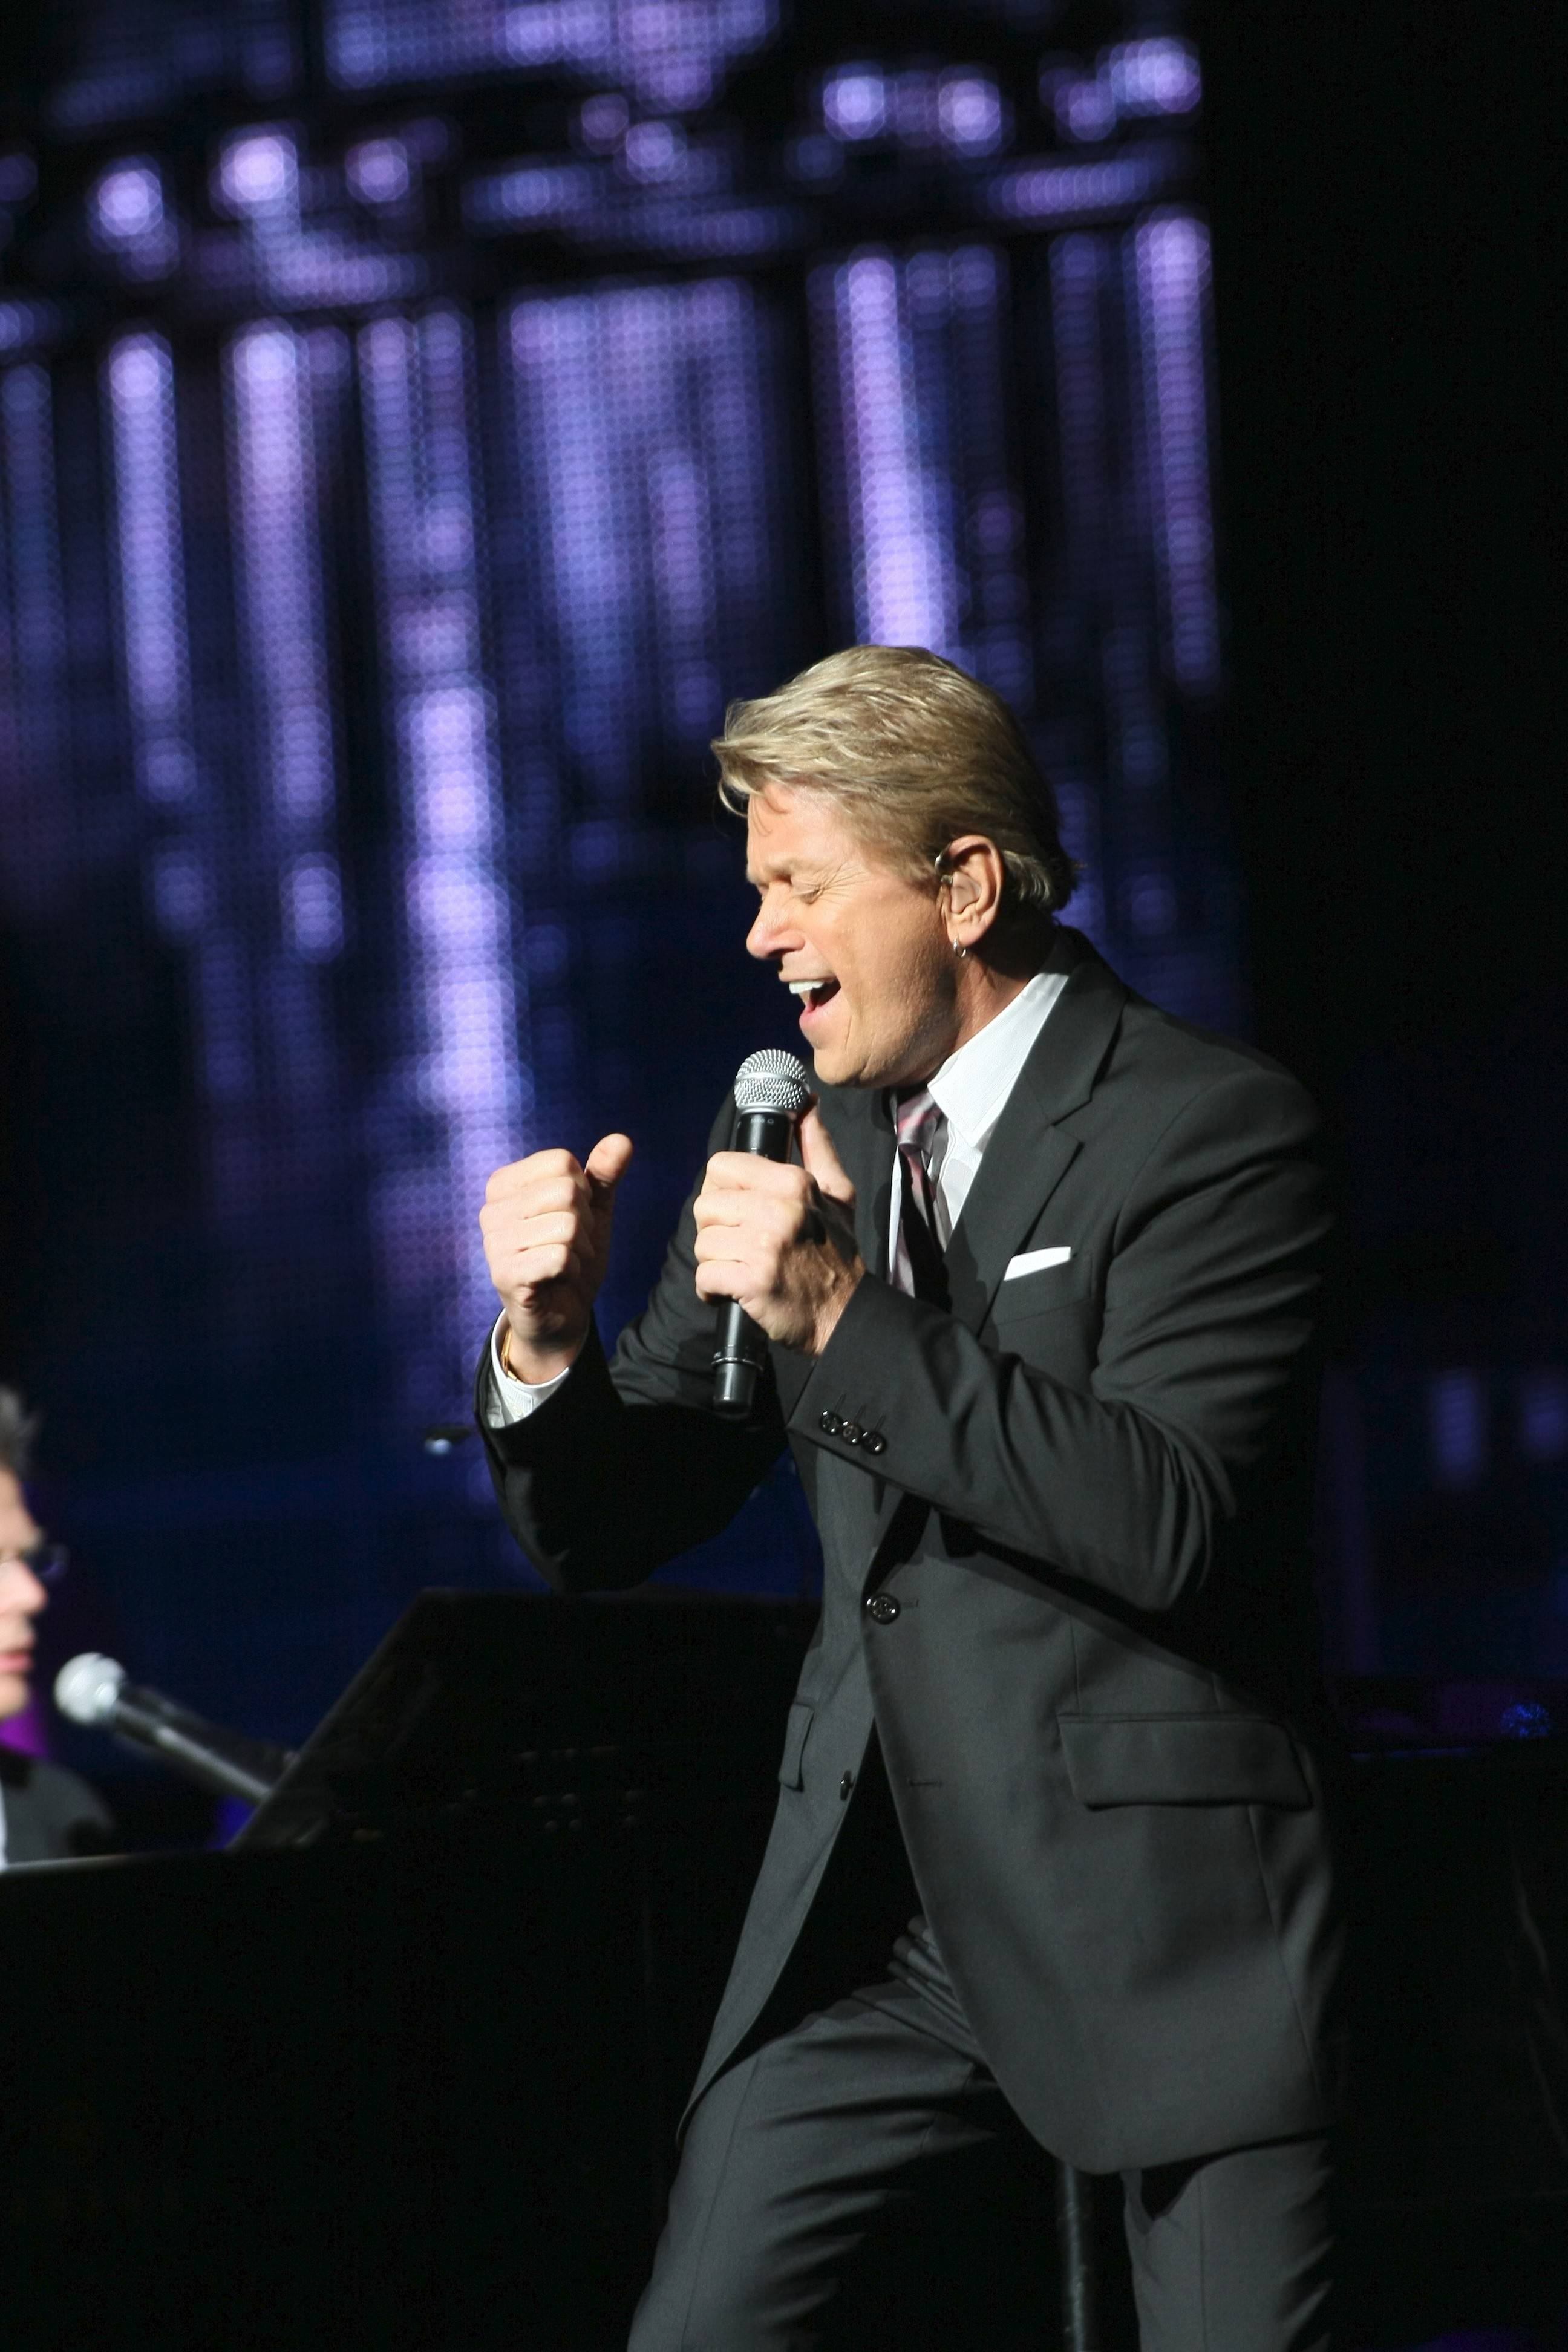 Peter Cetera comes to the Genesee Theatre in Waukegan at 8 p.m. Saturday, Nov. 12.